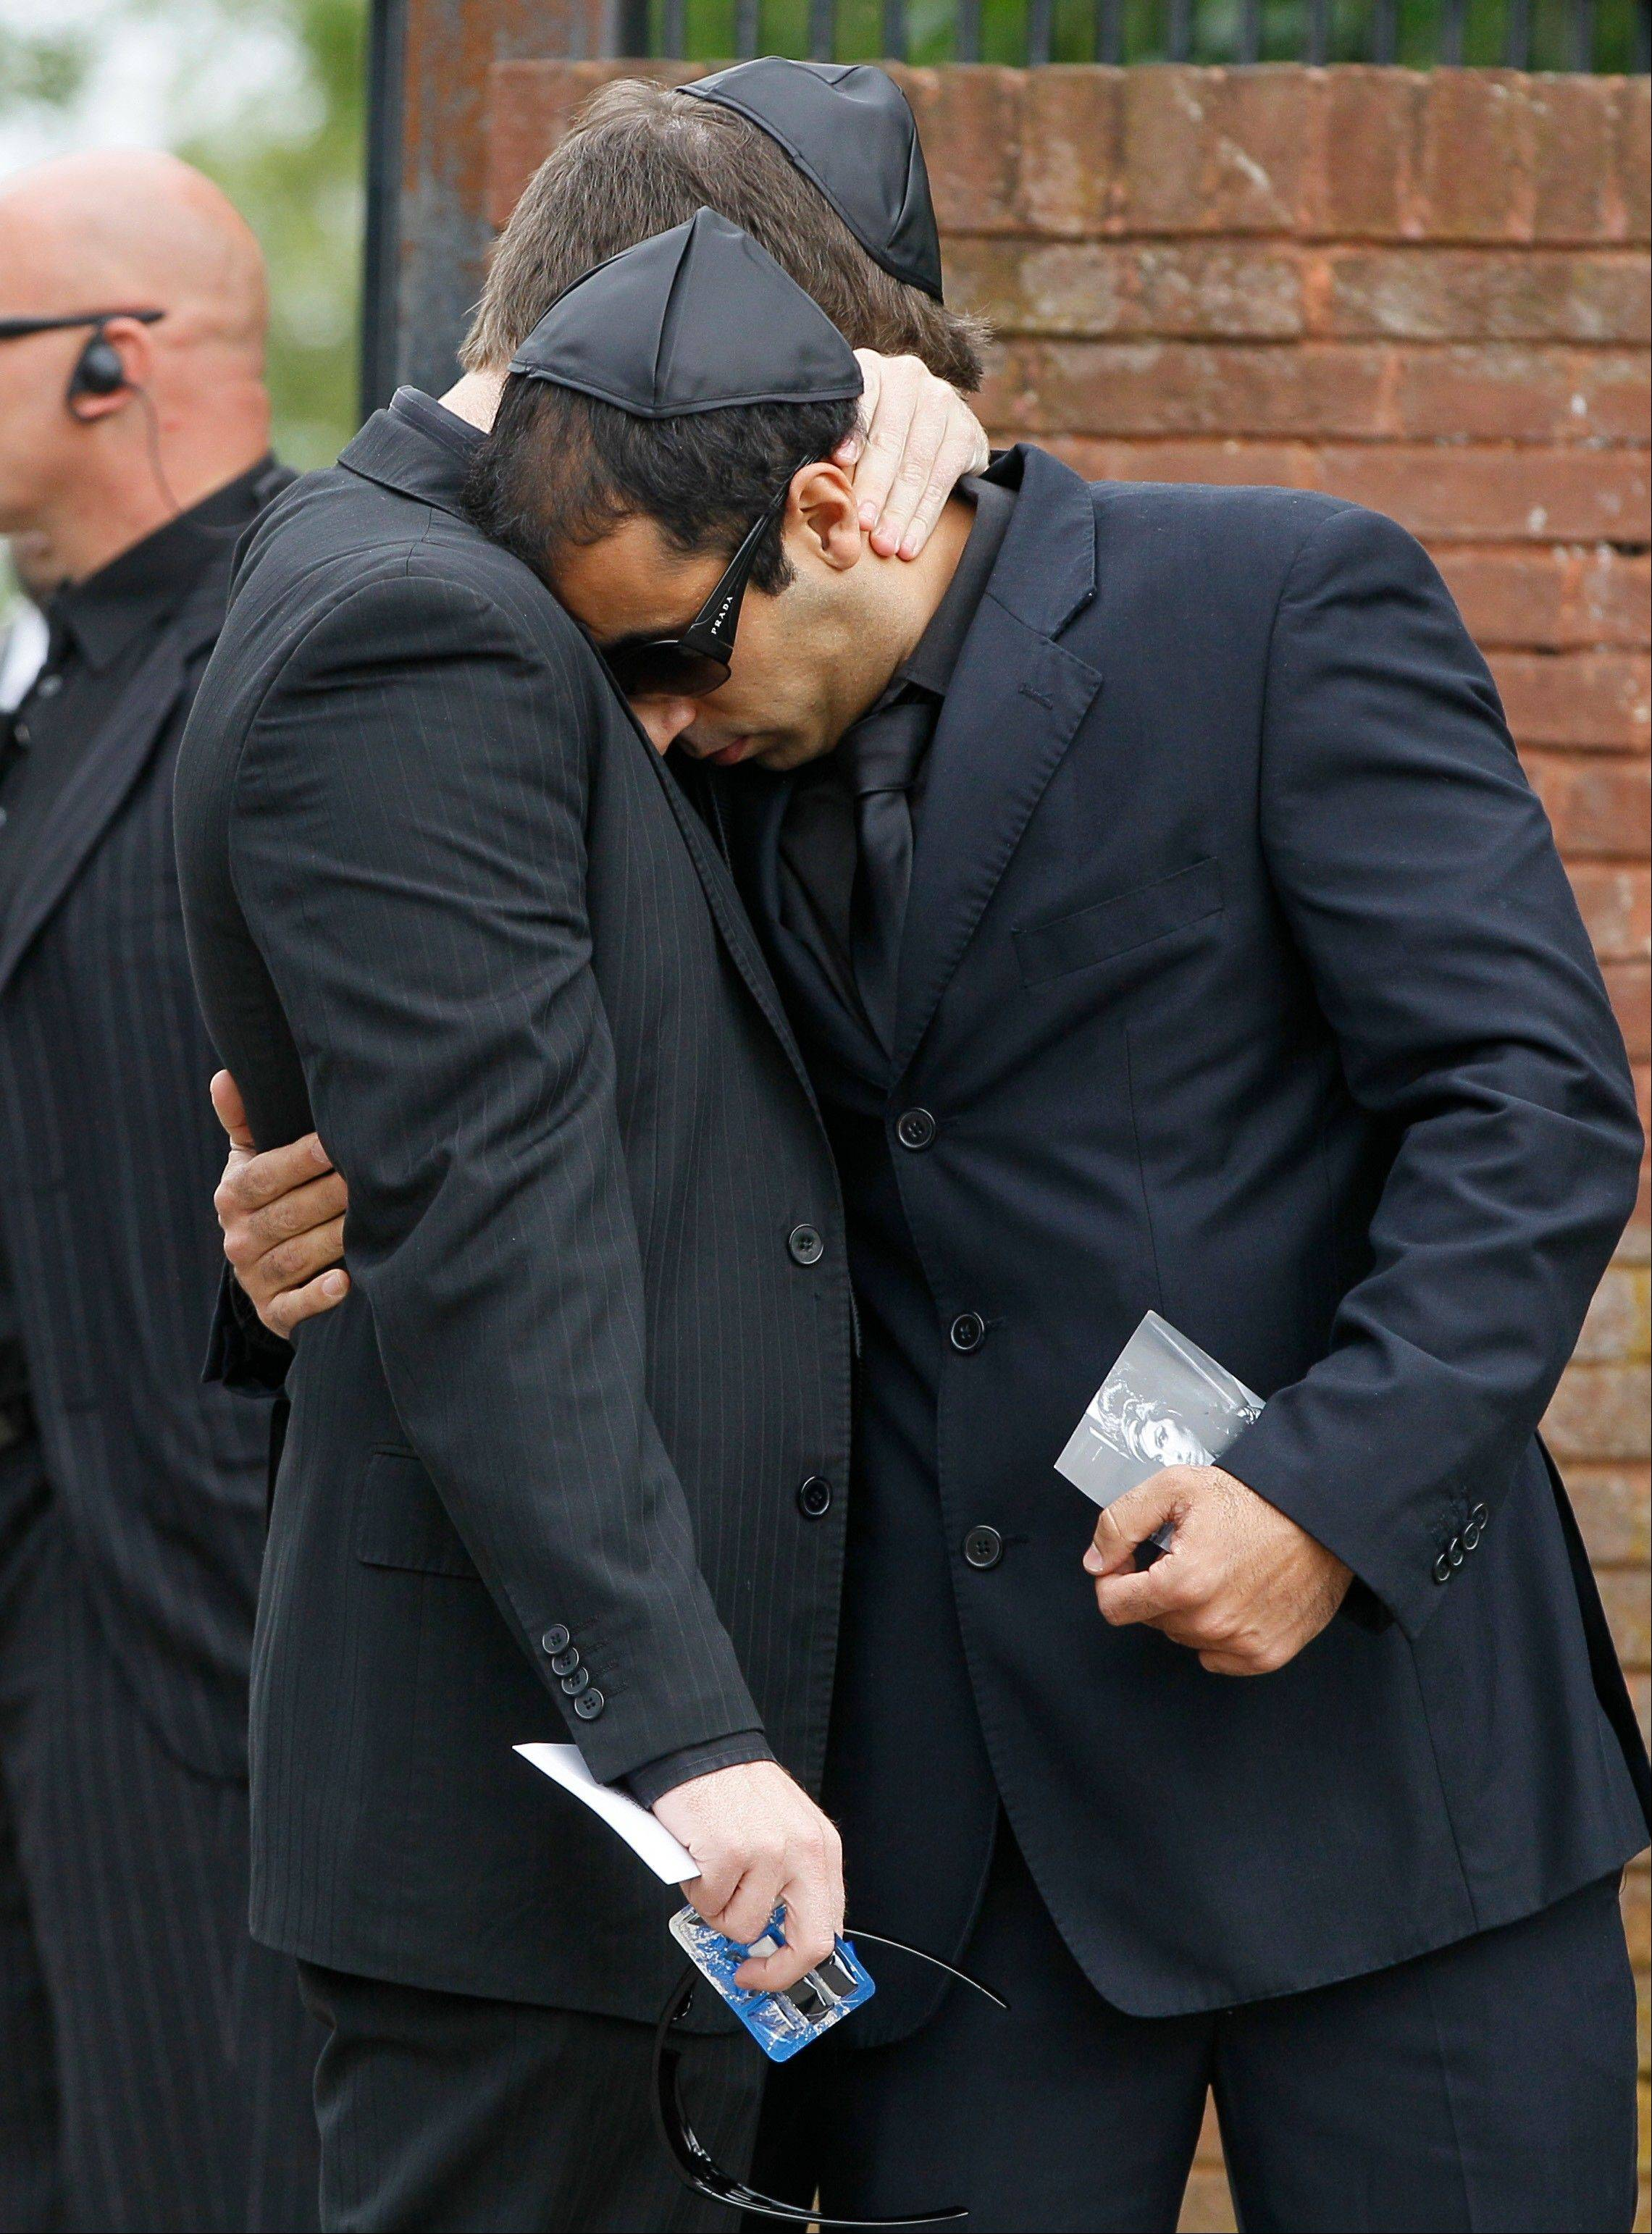 Two unidentified mourners embrace as they leave Edgwarebury Cemetery, in London, Tuesday July 26, 2011, after attending the funeral of singer Amy Winehouse.